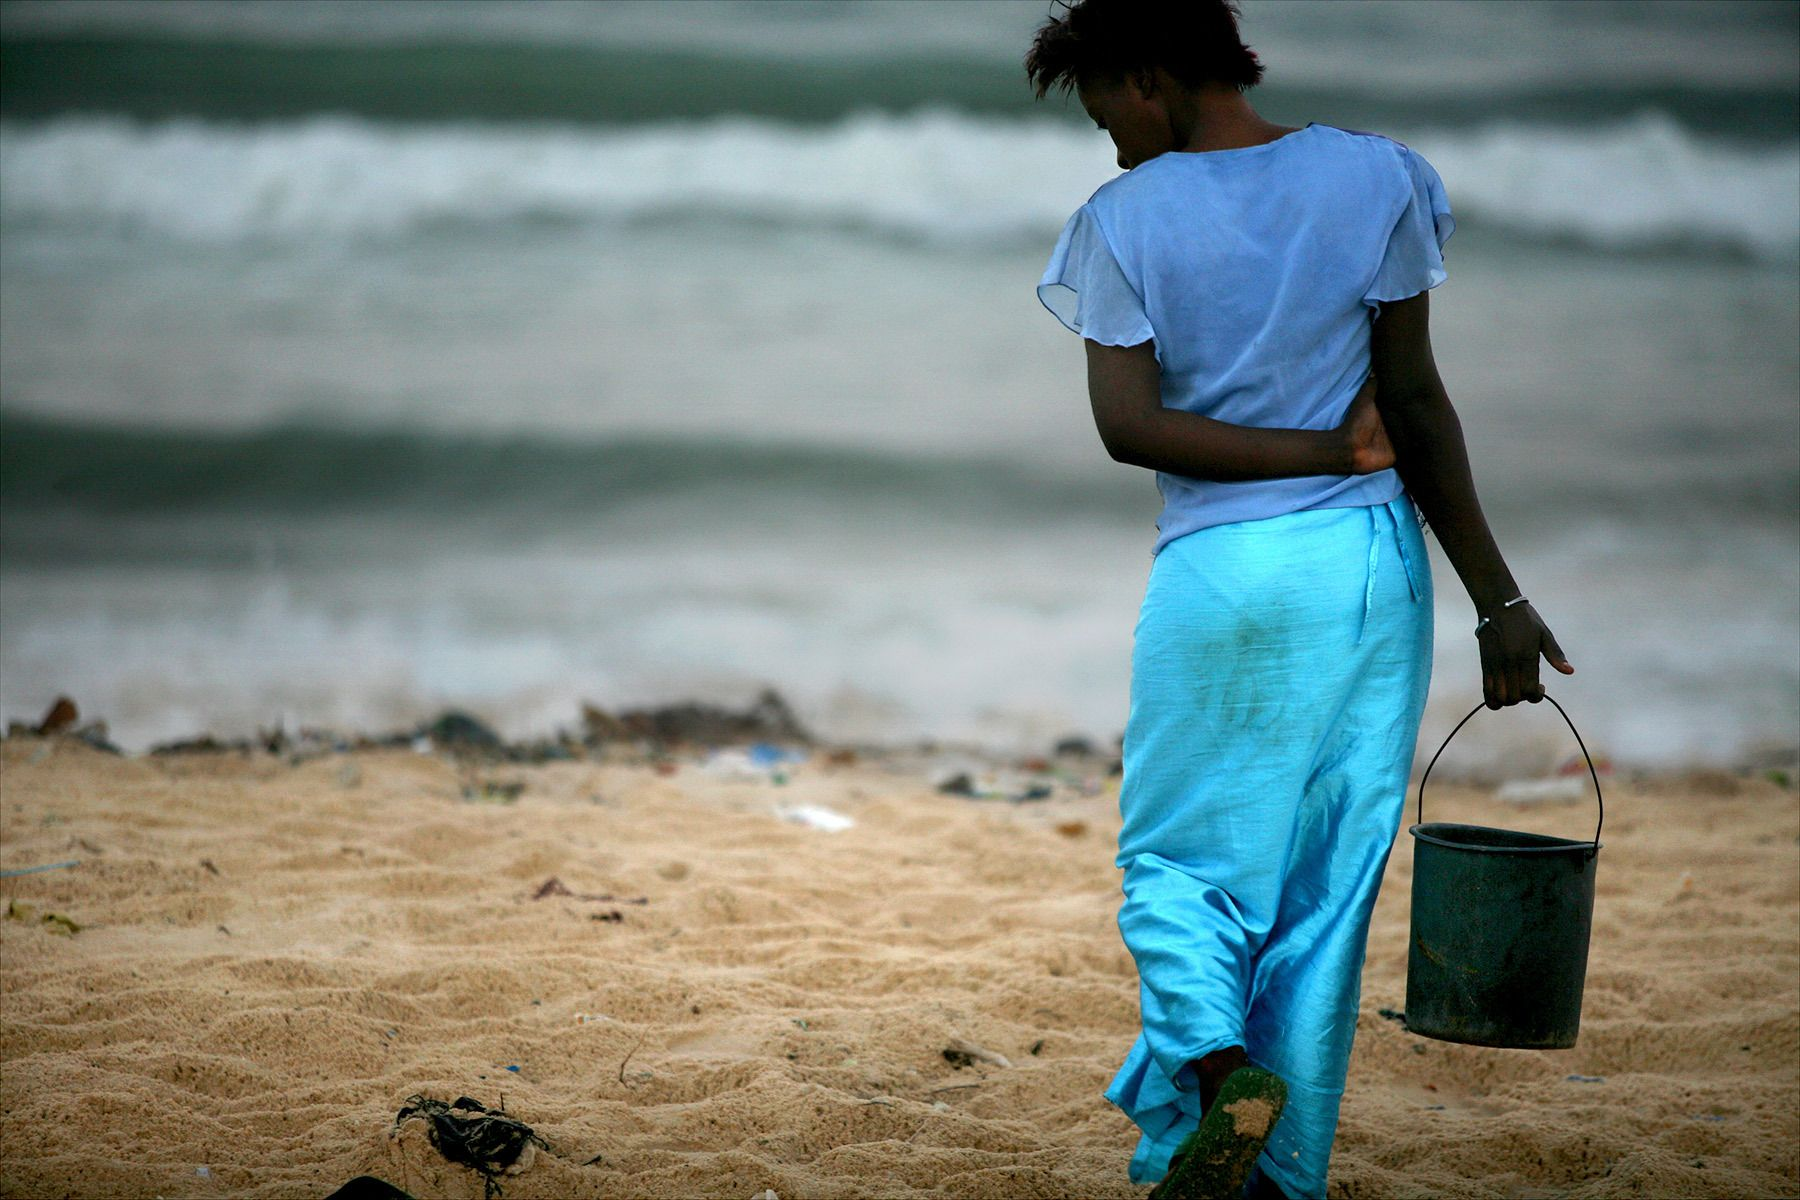 SENEGALESE GIRL IN TURQUOISE SKIRT